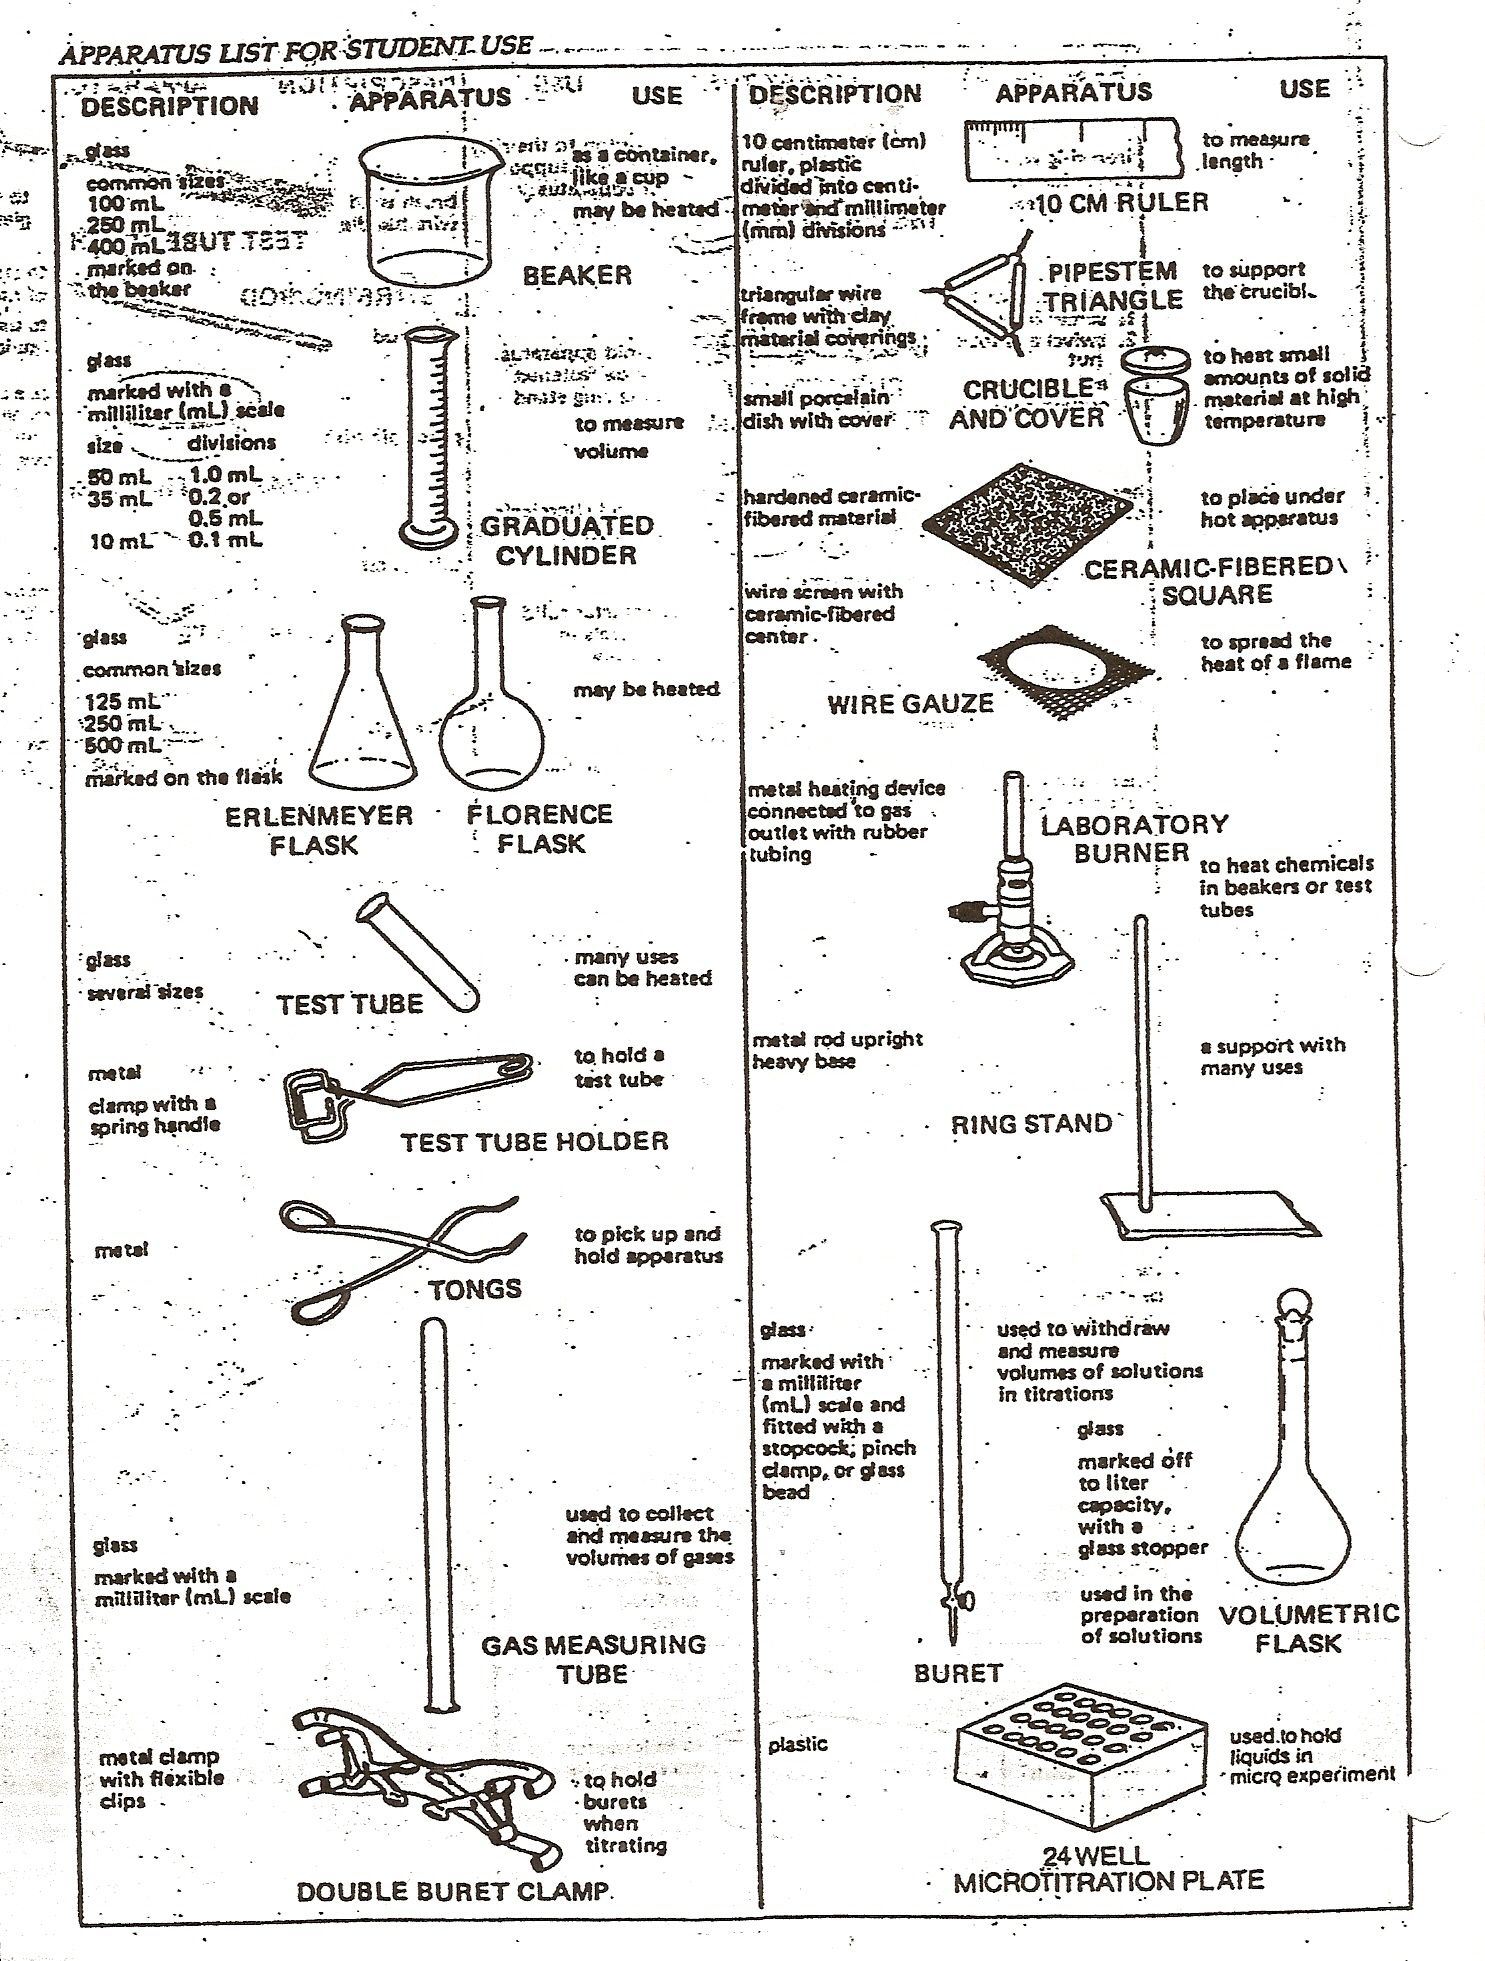 Worksheets Equipment Used In Biology Laboratory 1000 images about testing on pinterest lab equipment leicester and stock photos